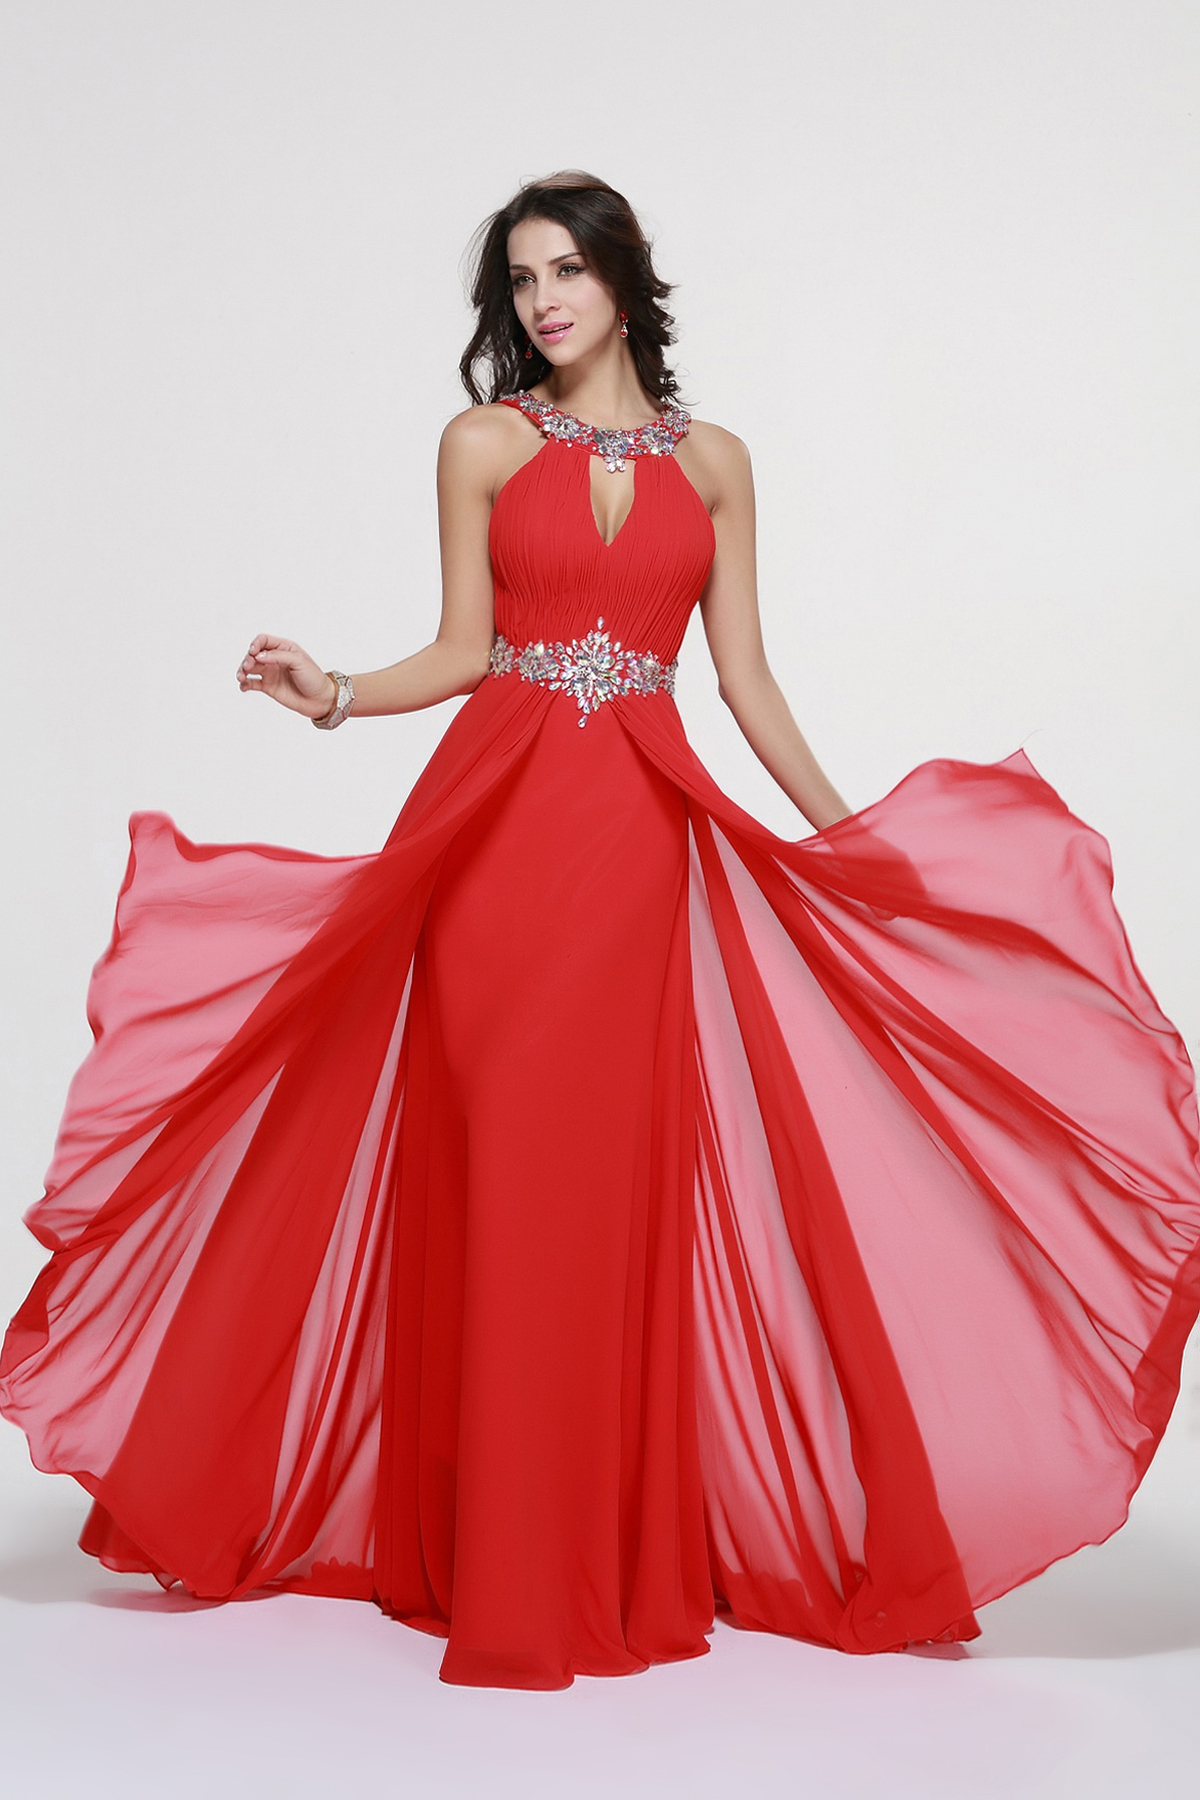 Sleeveless Halter Neck A-line Long Red Chiffon Prom Dress